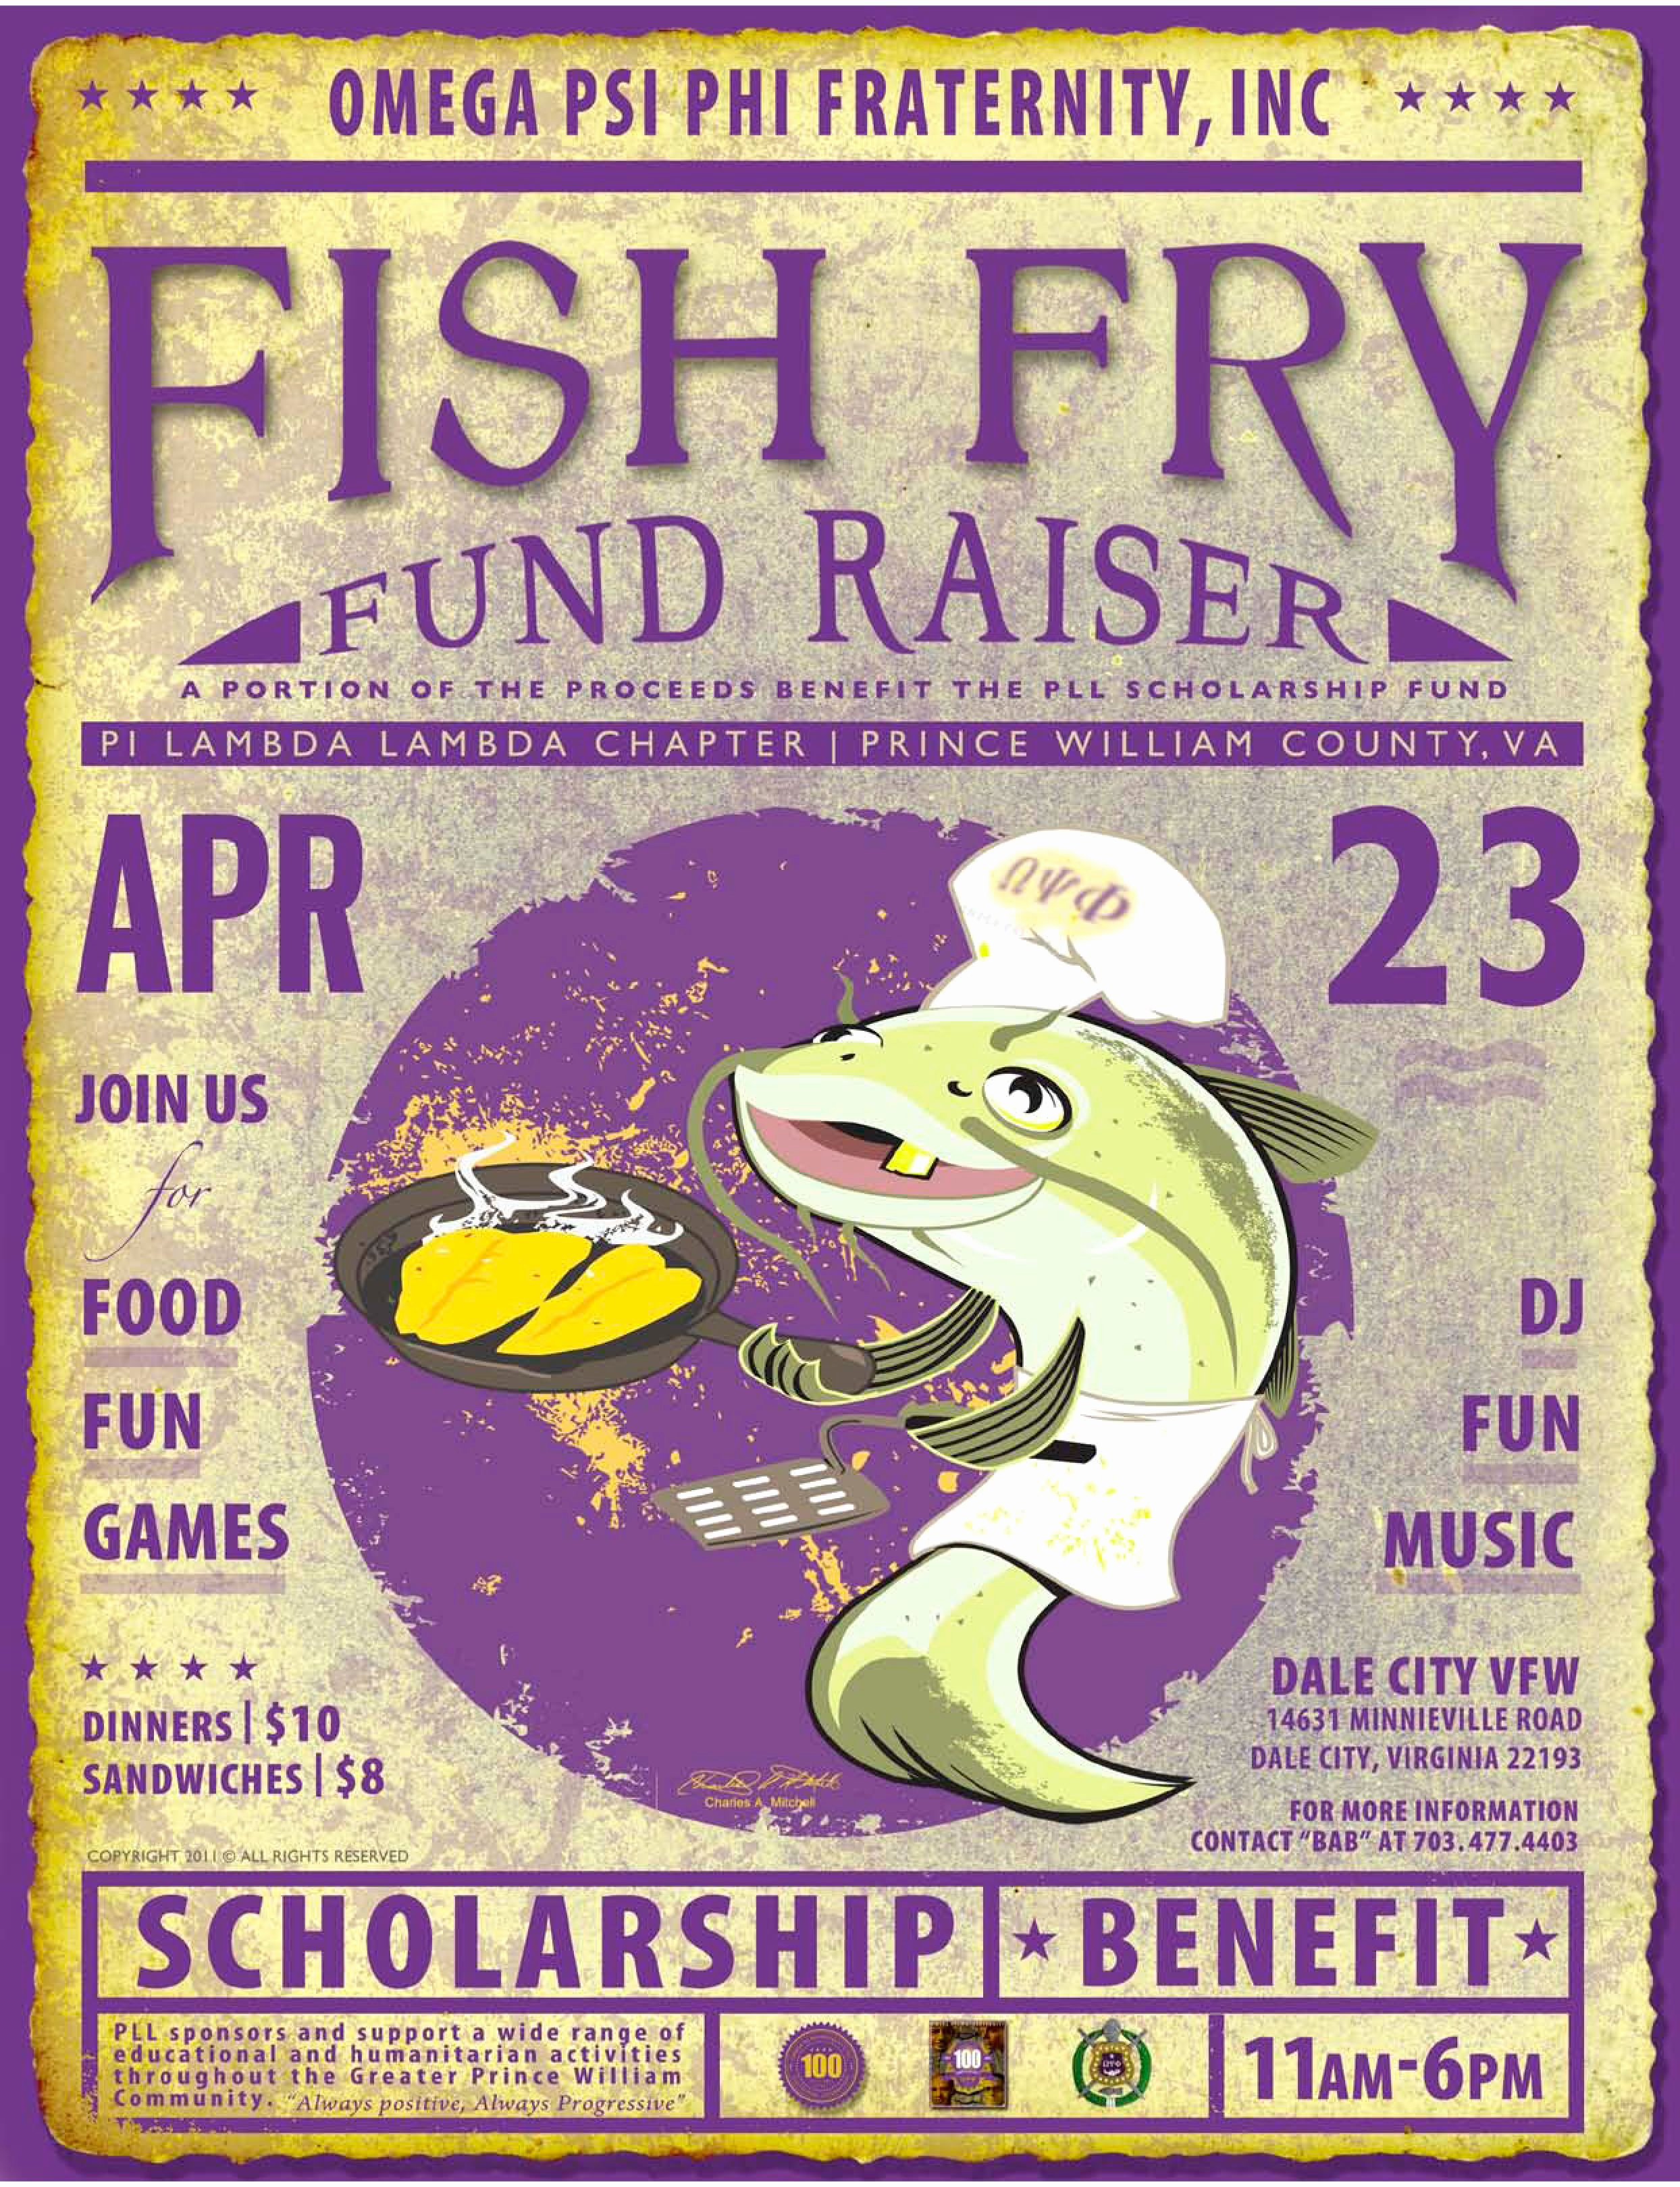 Fish Fry Flyer Template Elegant Great Poster for A Fish Fry Fundraising event You Can